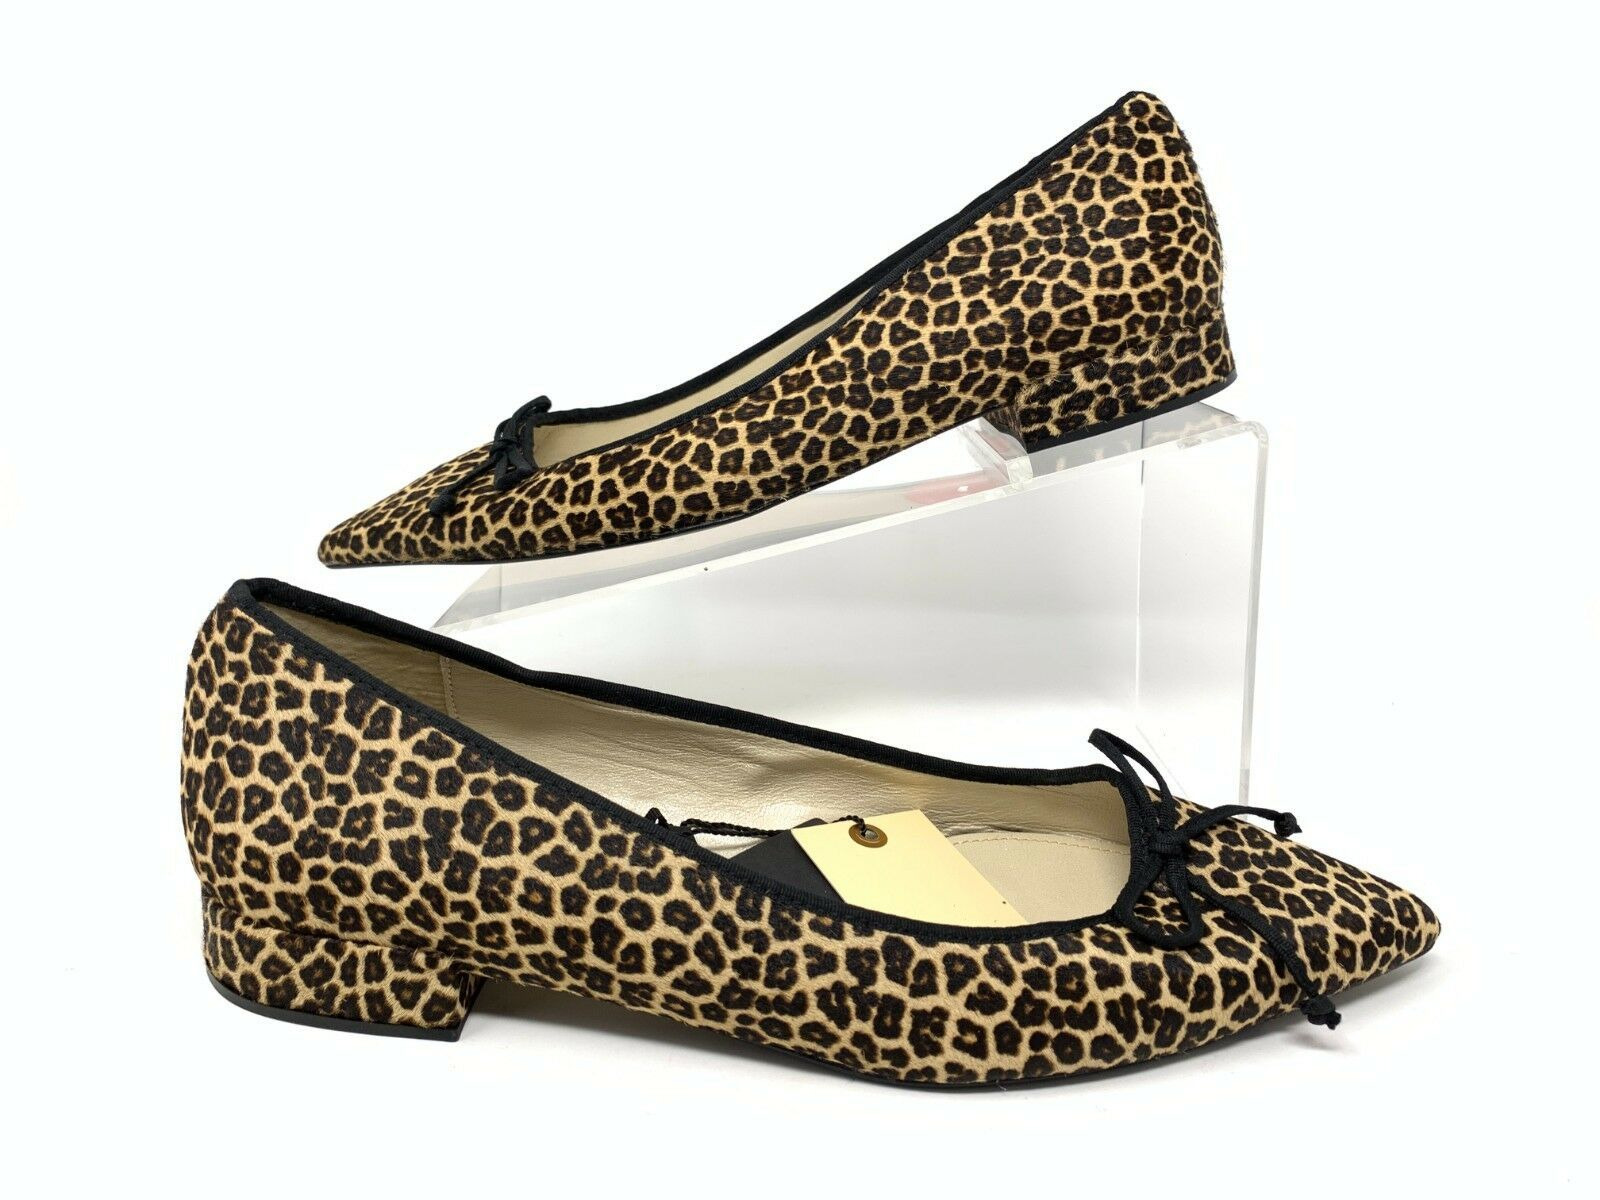 Zara Womens Leather Ballerinas Ballet Flats Leopard EU 41 US 10 Leather 1524/301 - $79.19